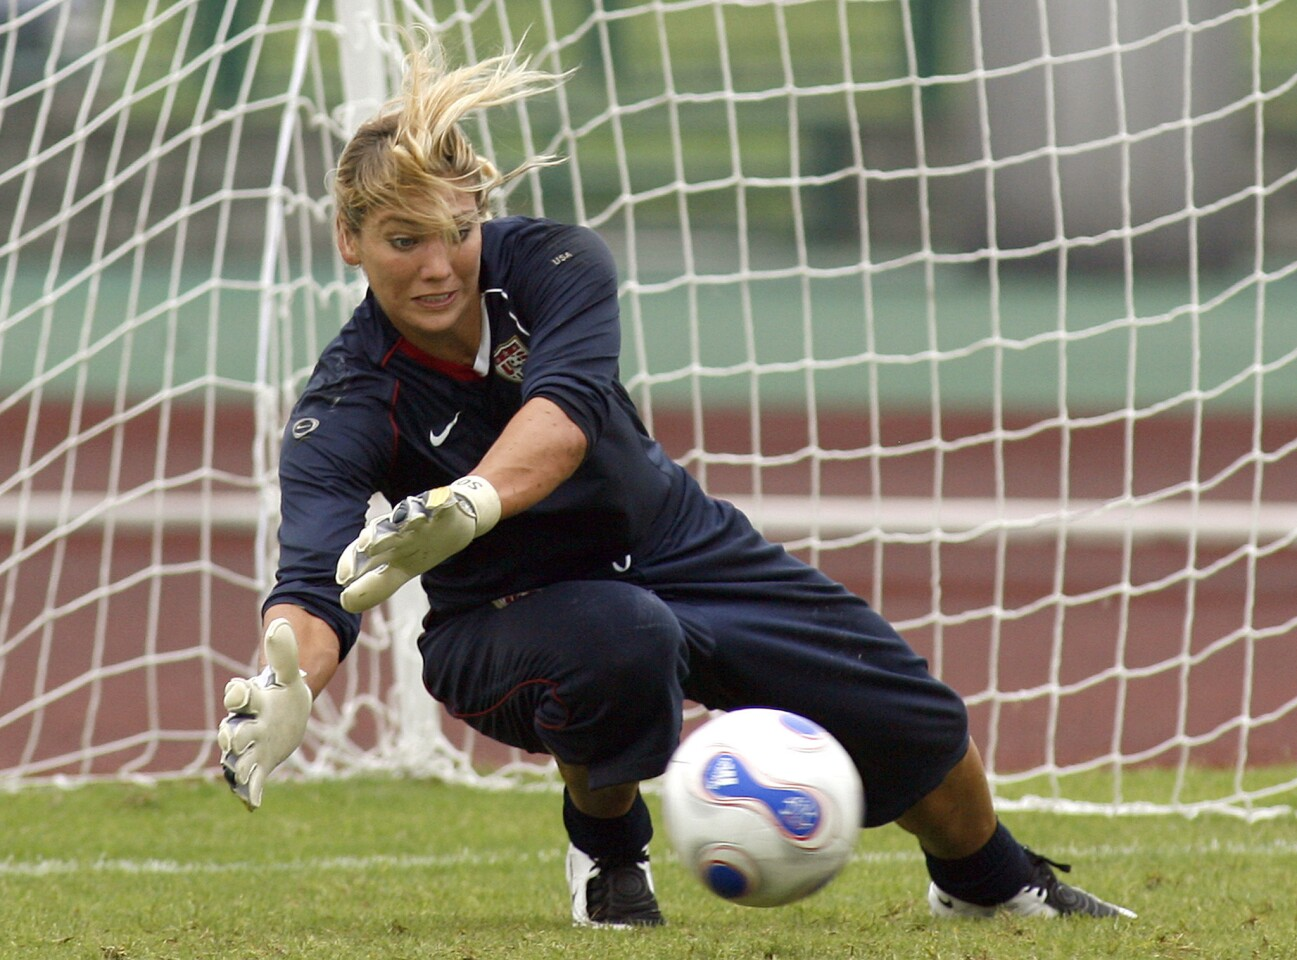 US women football team's goalkeeper Hope Solo blocks the ball during a training session in Chengdu, China's southwestern province of Sichuan, 08 September 2007. The United States will face North Korea on September 11 in group B matches of 2007 FIFA women's football world cup in Chengdu. AFP PHOTO/ LIU Jin (Photo credit should read LIU JIN/AFP/Getty Images) ORG XMIT: